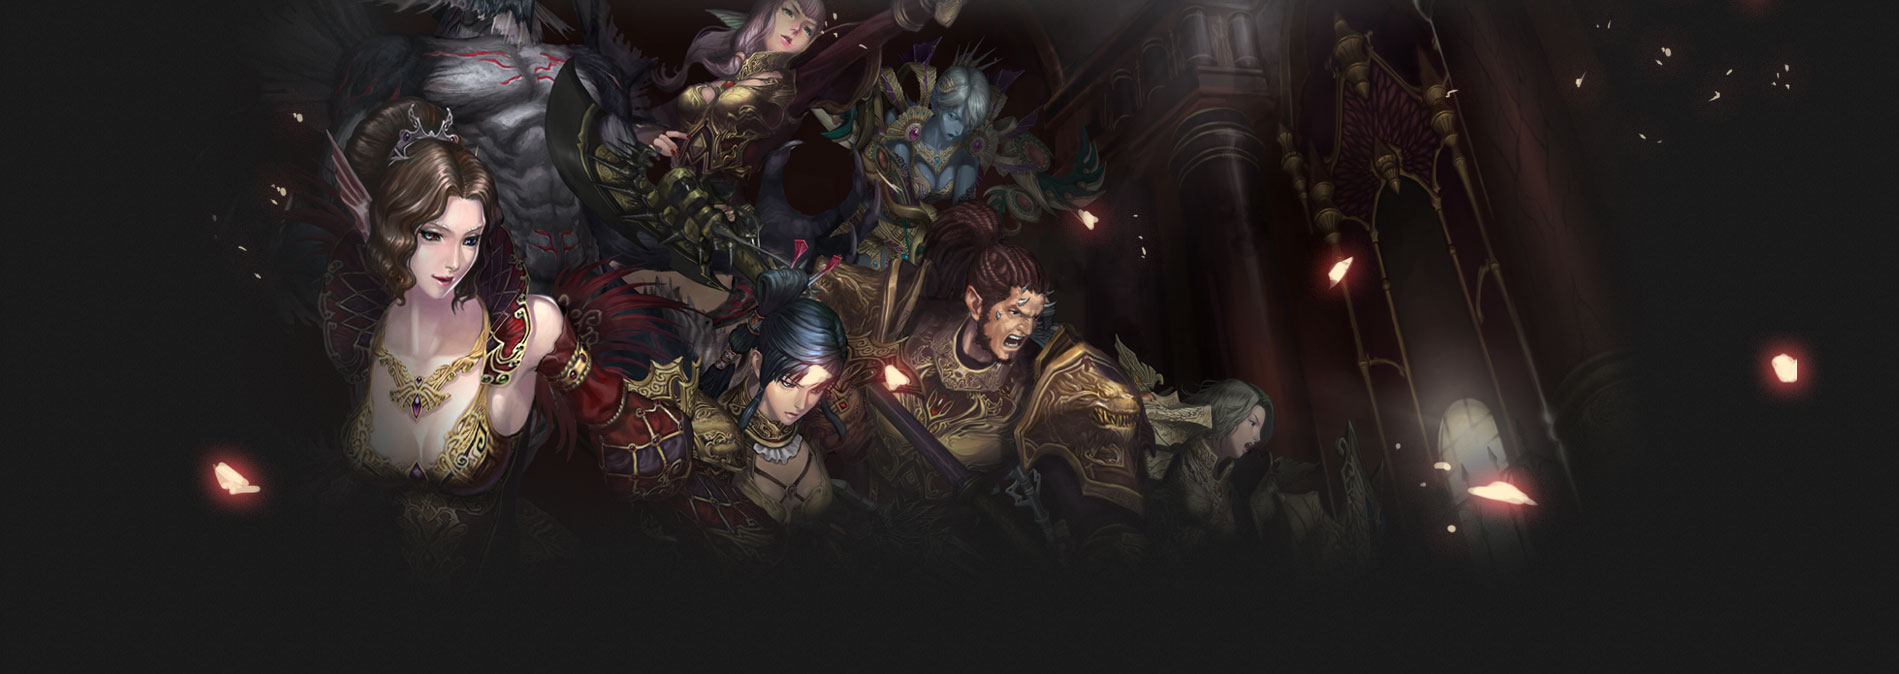 R O H A N : Blood Feud - Free to Play Online MMORPG Game